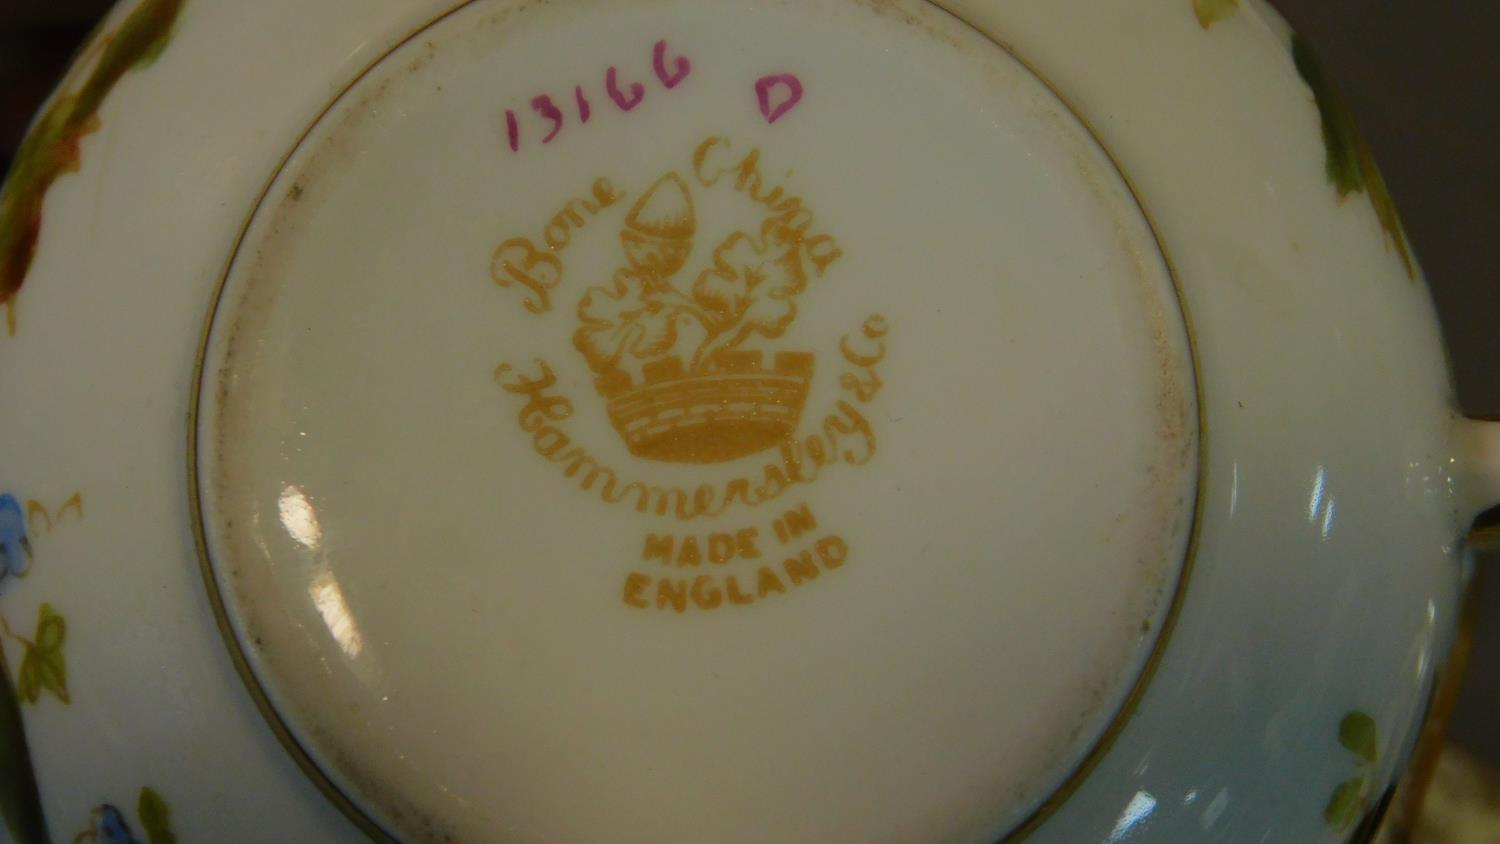 A miscellaneous collection of Victorian and later porcelain, vase, cups, saucers etc. - Image 12 of 14